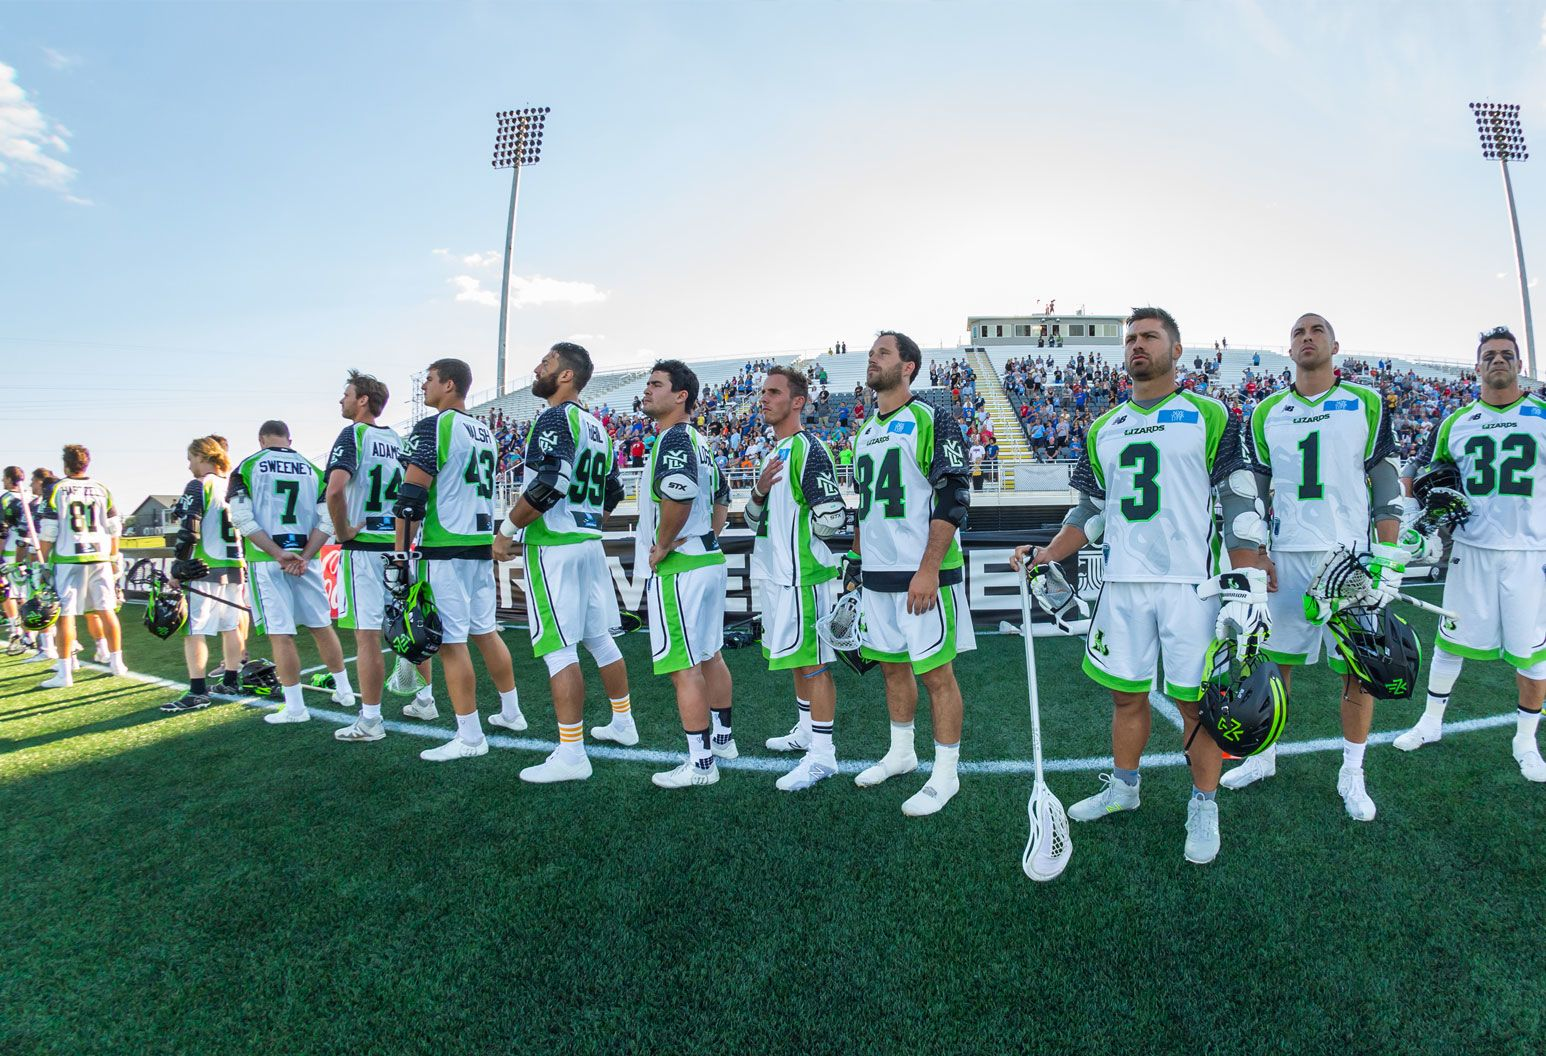 Players on the New York Lizards lacrosse team line up before a game, listening to the National Anthem. Some of them have their hands on their hearts. They wear lime green and white uniforms and hold lacrosse sticks and helmets in their hands. There is a crowd in the bleachers in the background.